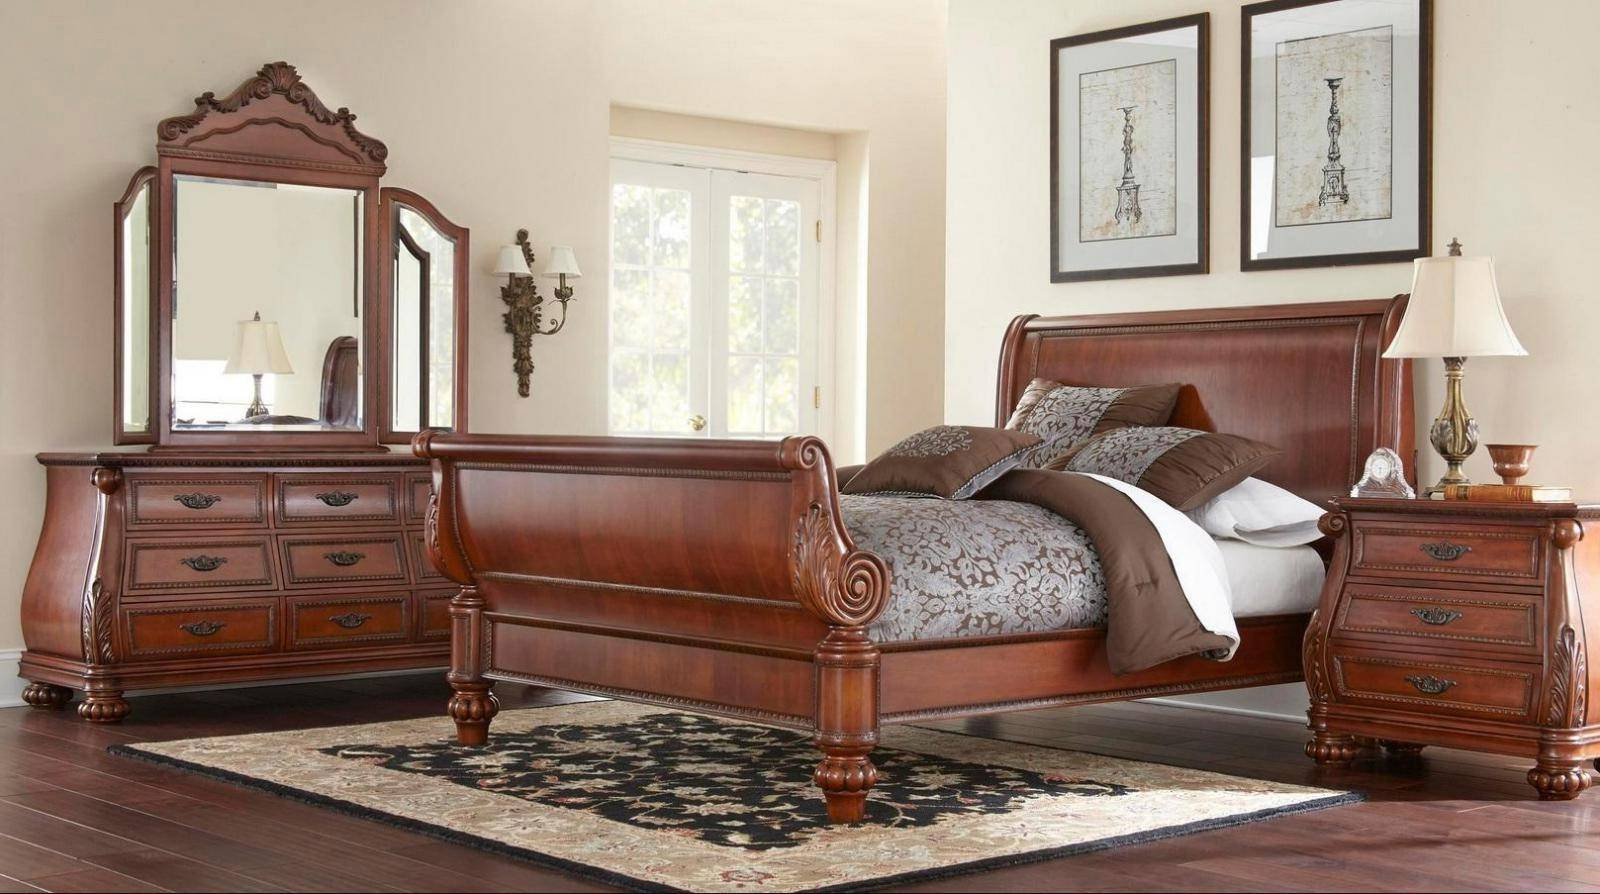 Soflex Stevie Cherry Brown Wood Queen Sleigh Bedroom Set ...